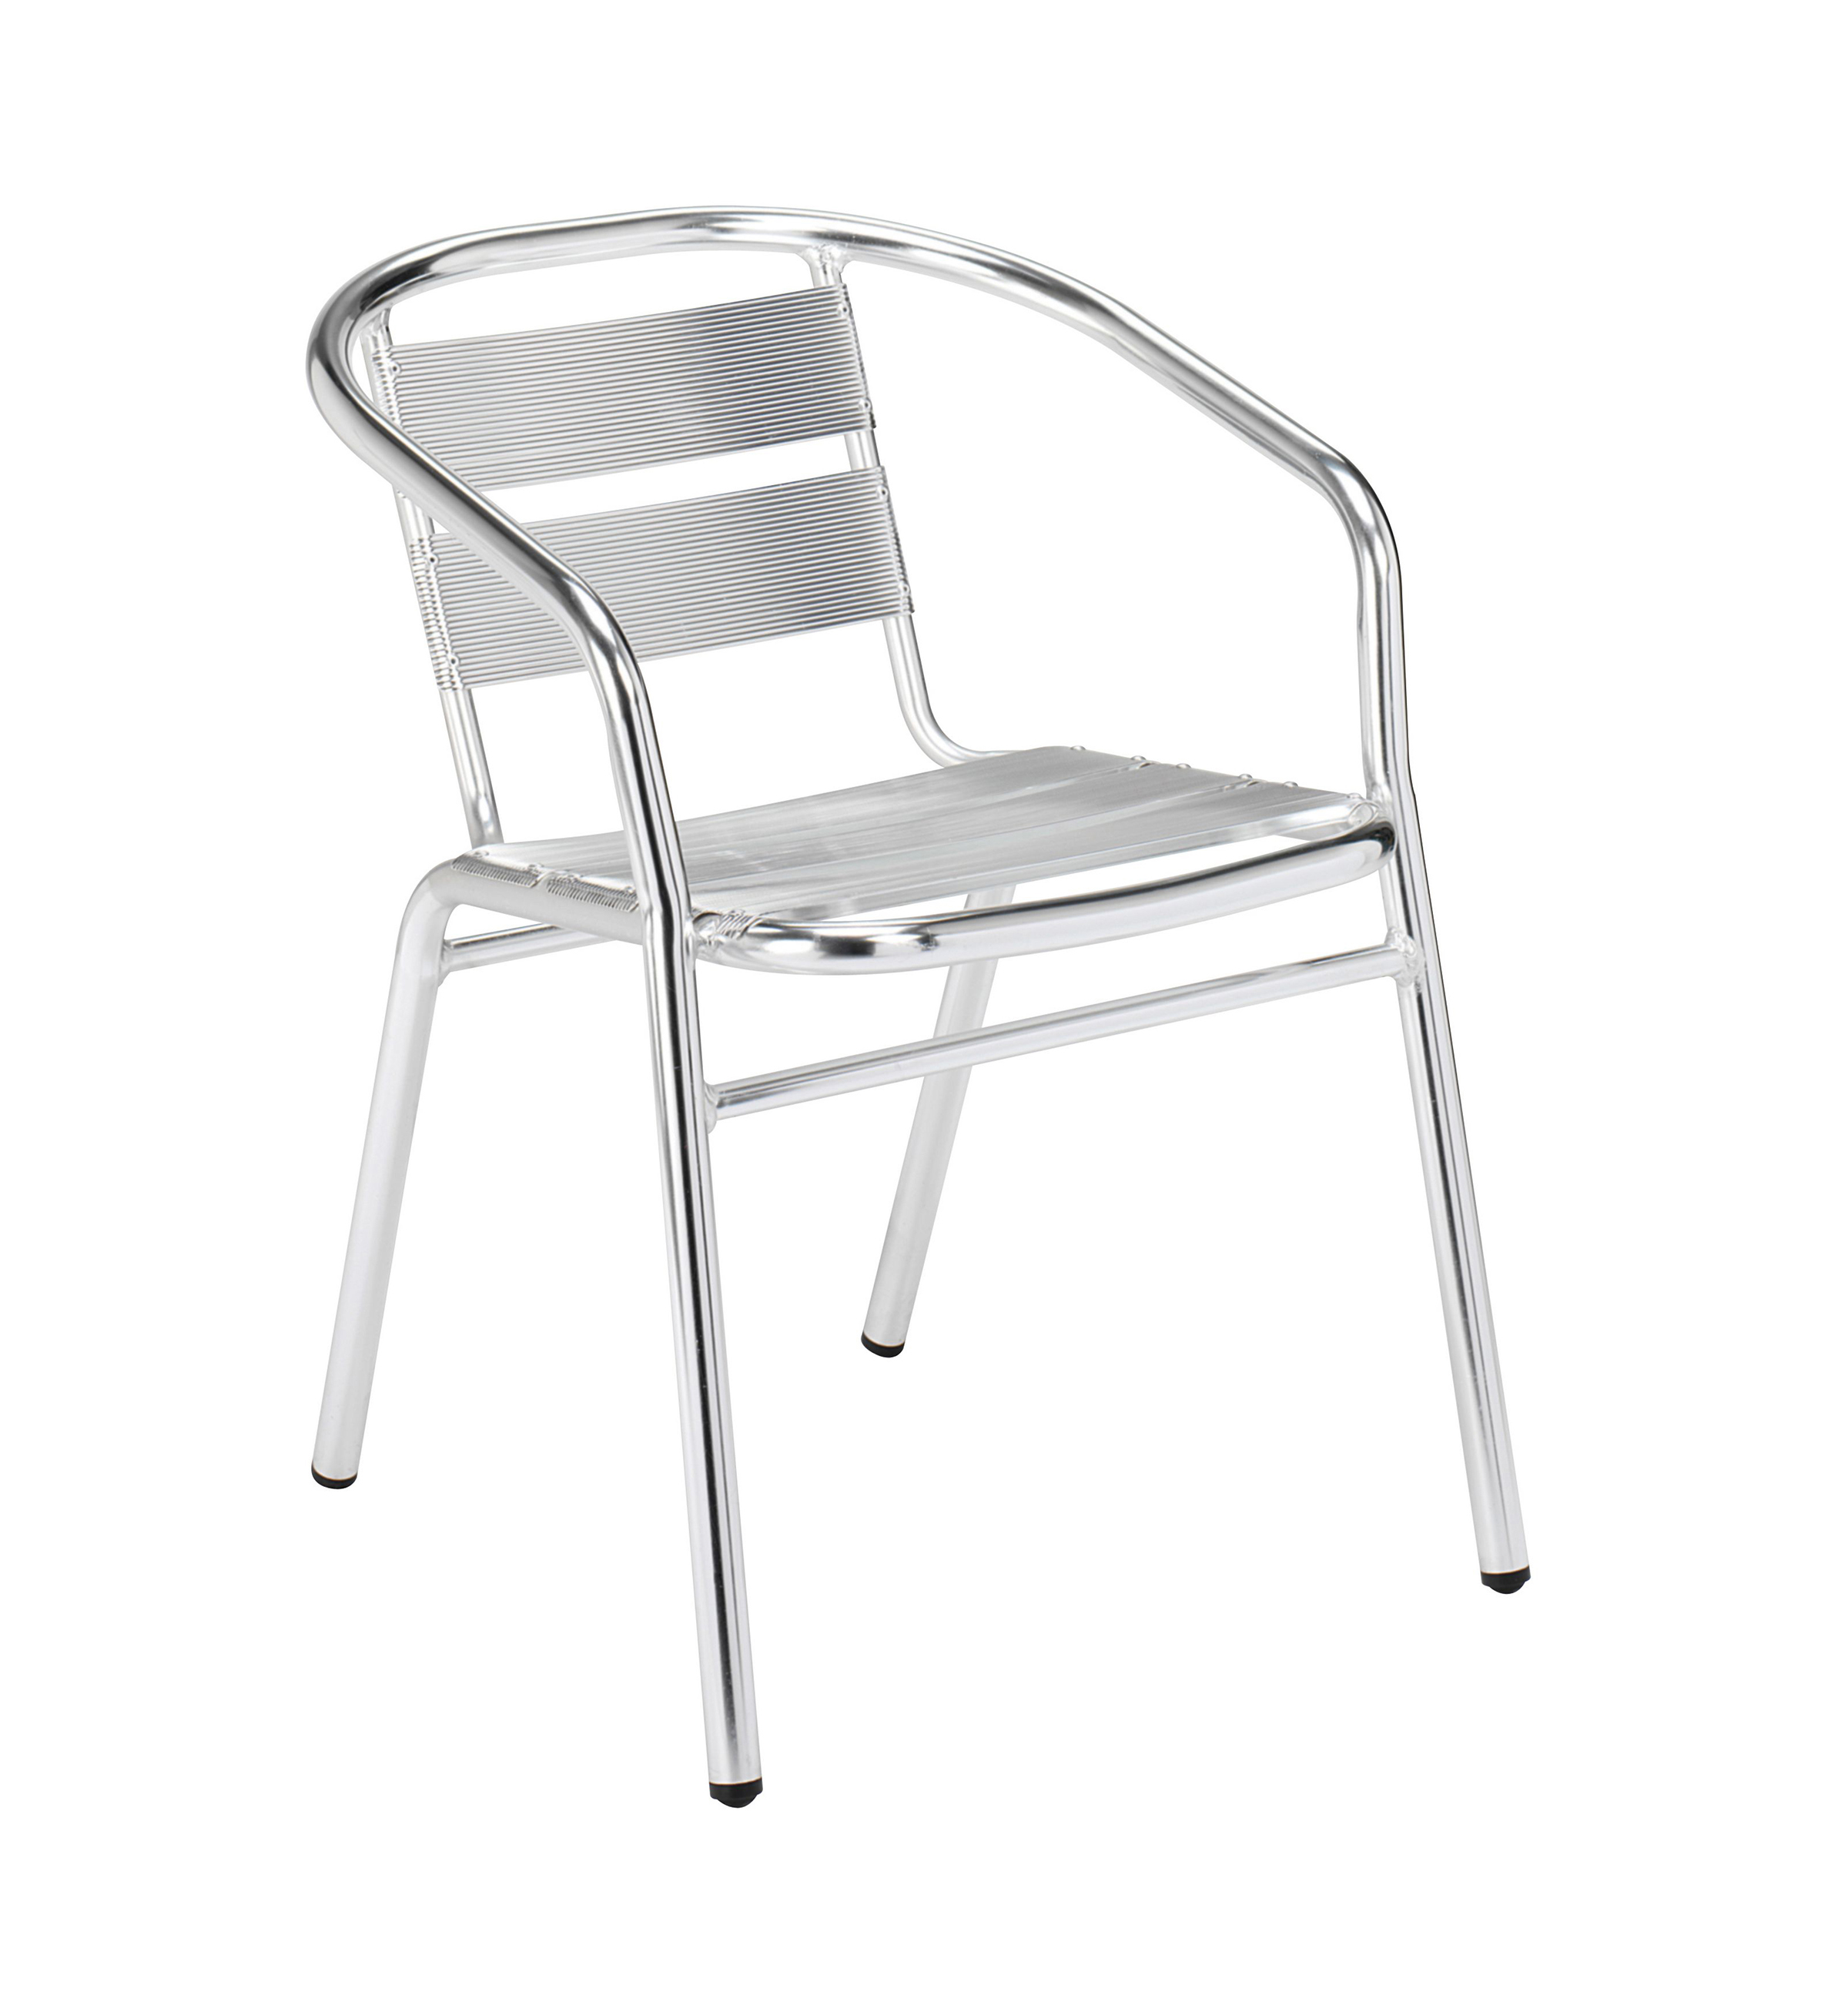 Outdoor Aluminium Chair with Arms